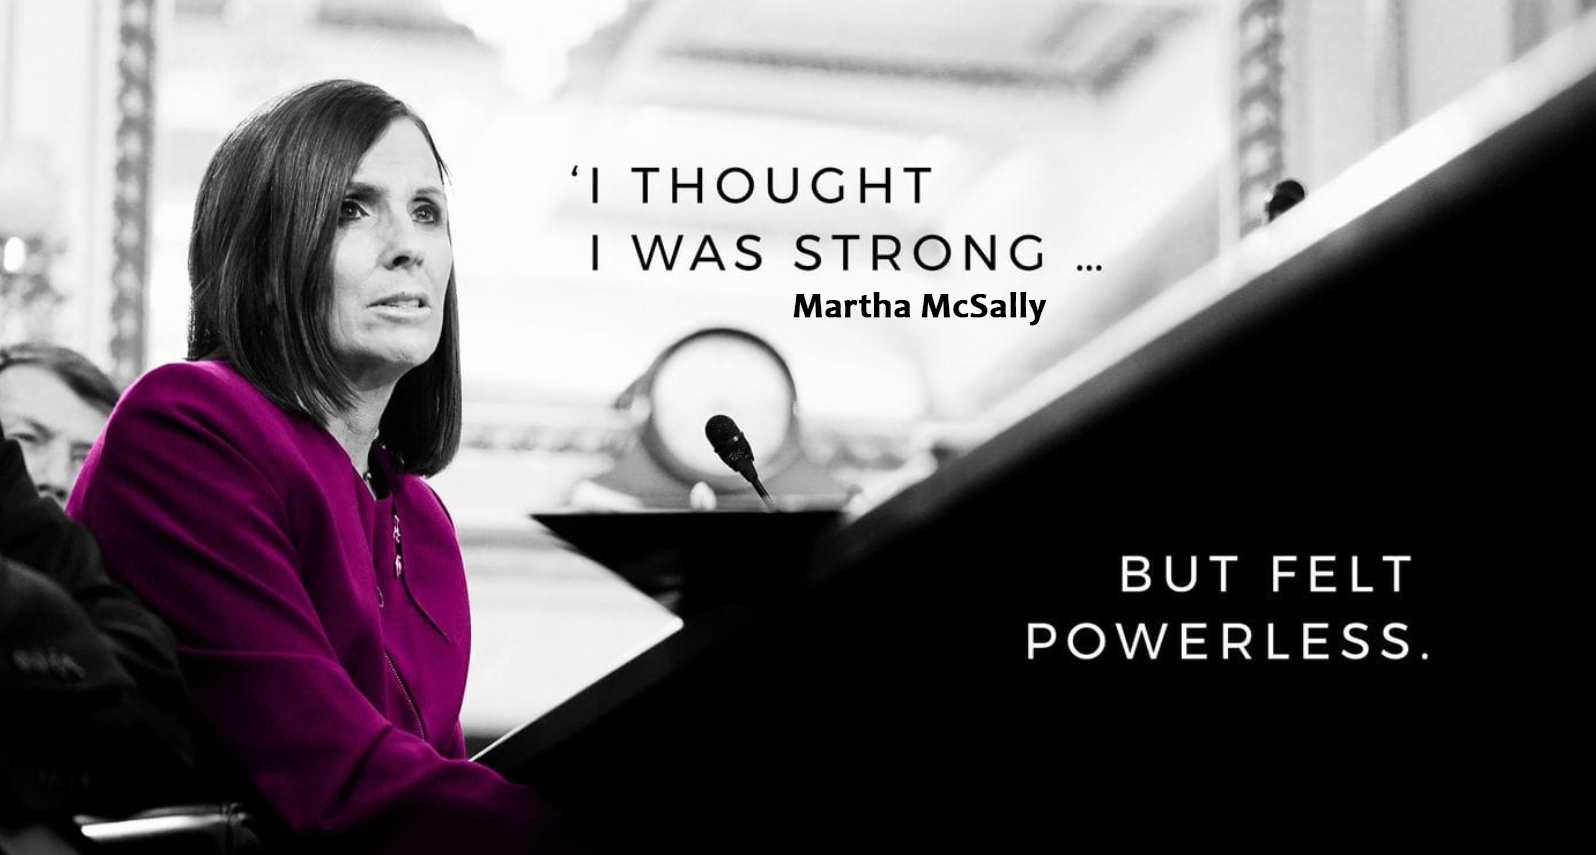 American Senator One Of My Chief Officers Had Sexually Abused Me says Martha McSally